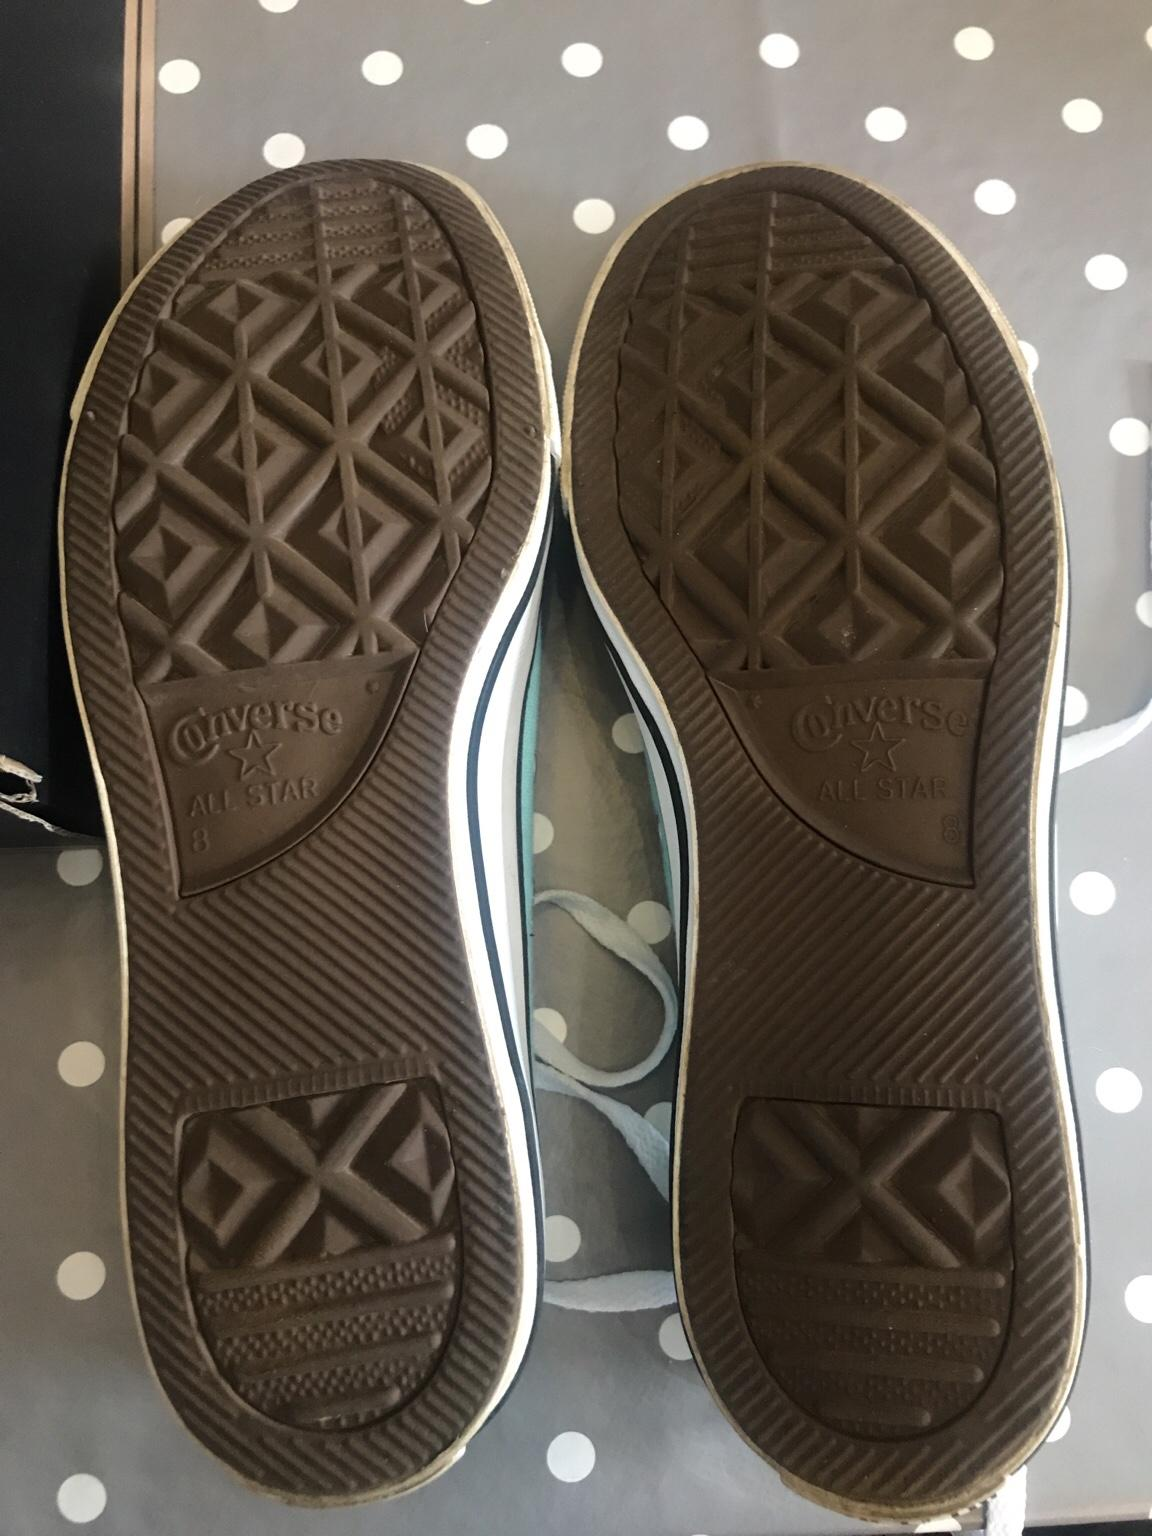 Size 8 Converse All Star trainers